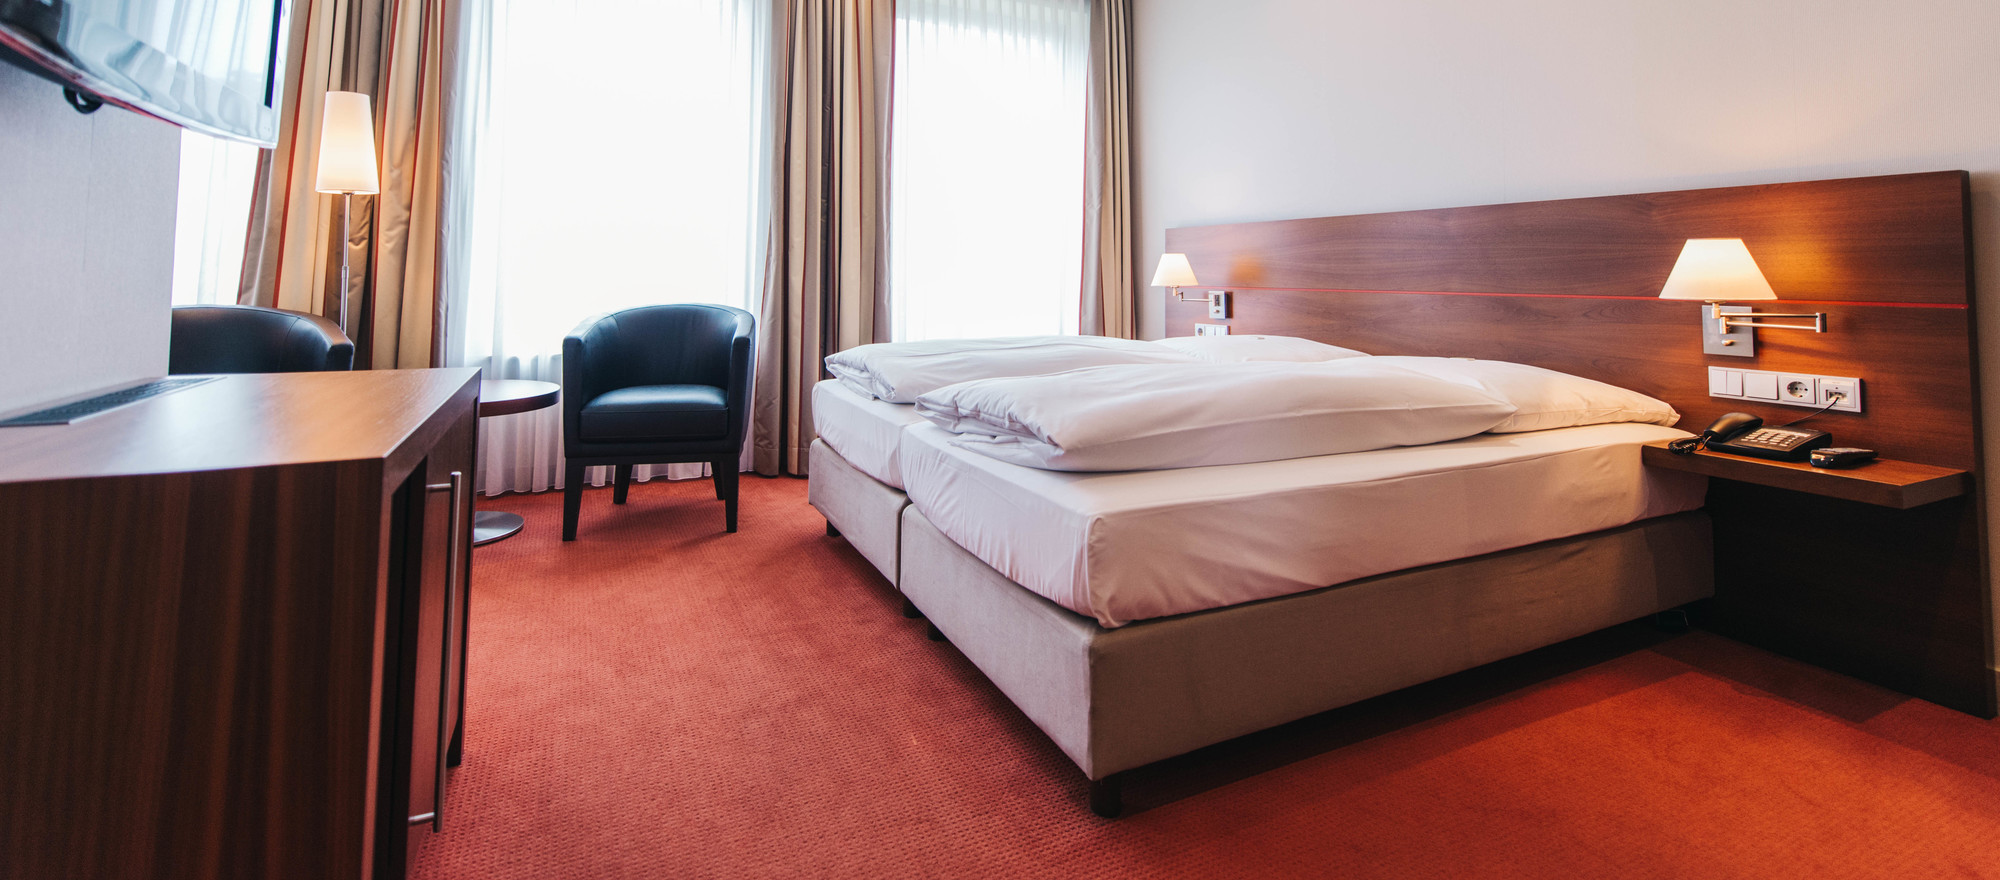 Cosy double room at the 4-star hotel Ringhotel Kocks at Muehlenberg garni in Muelheim